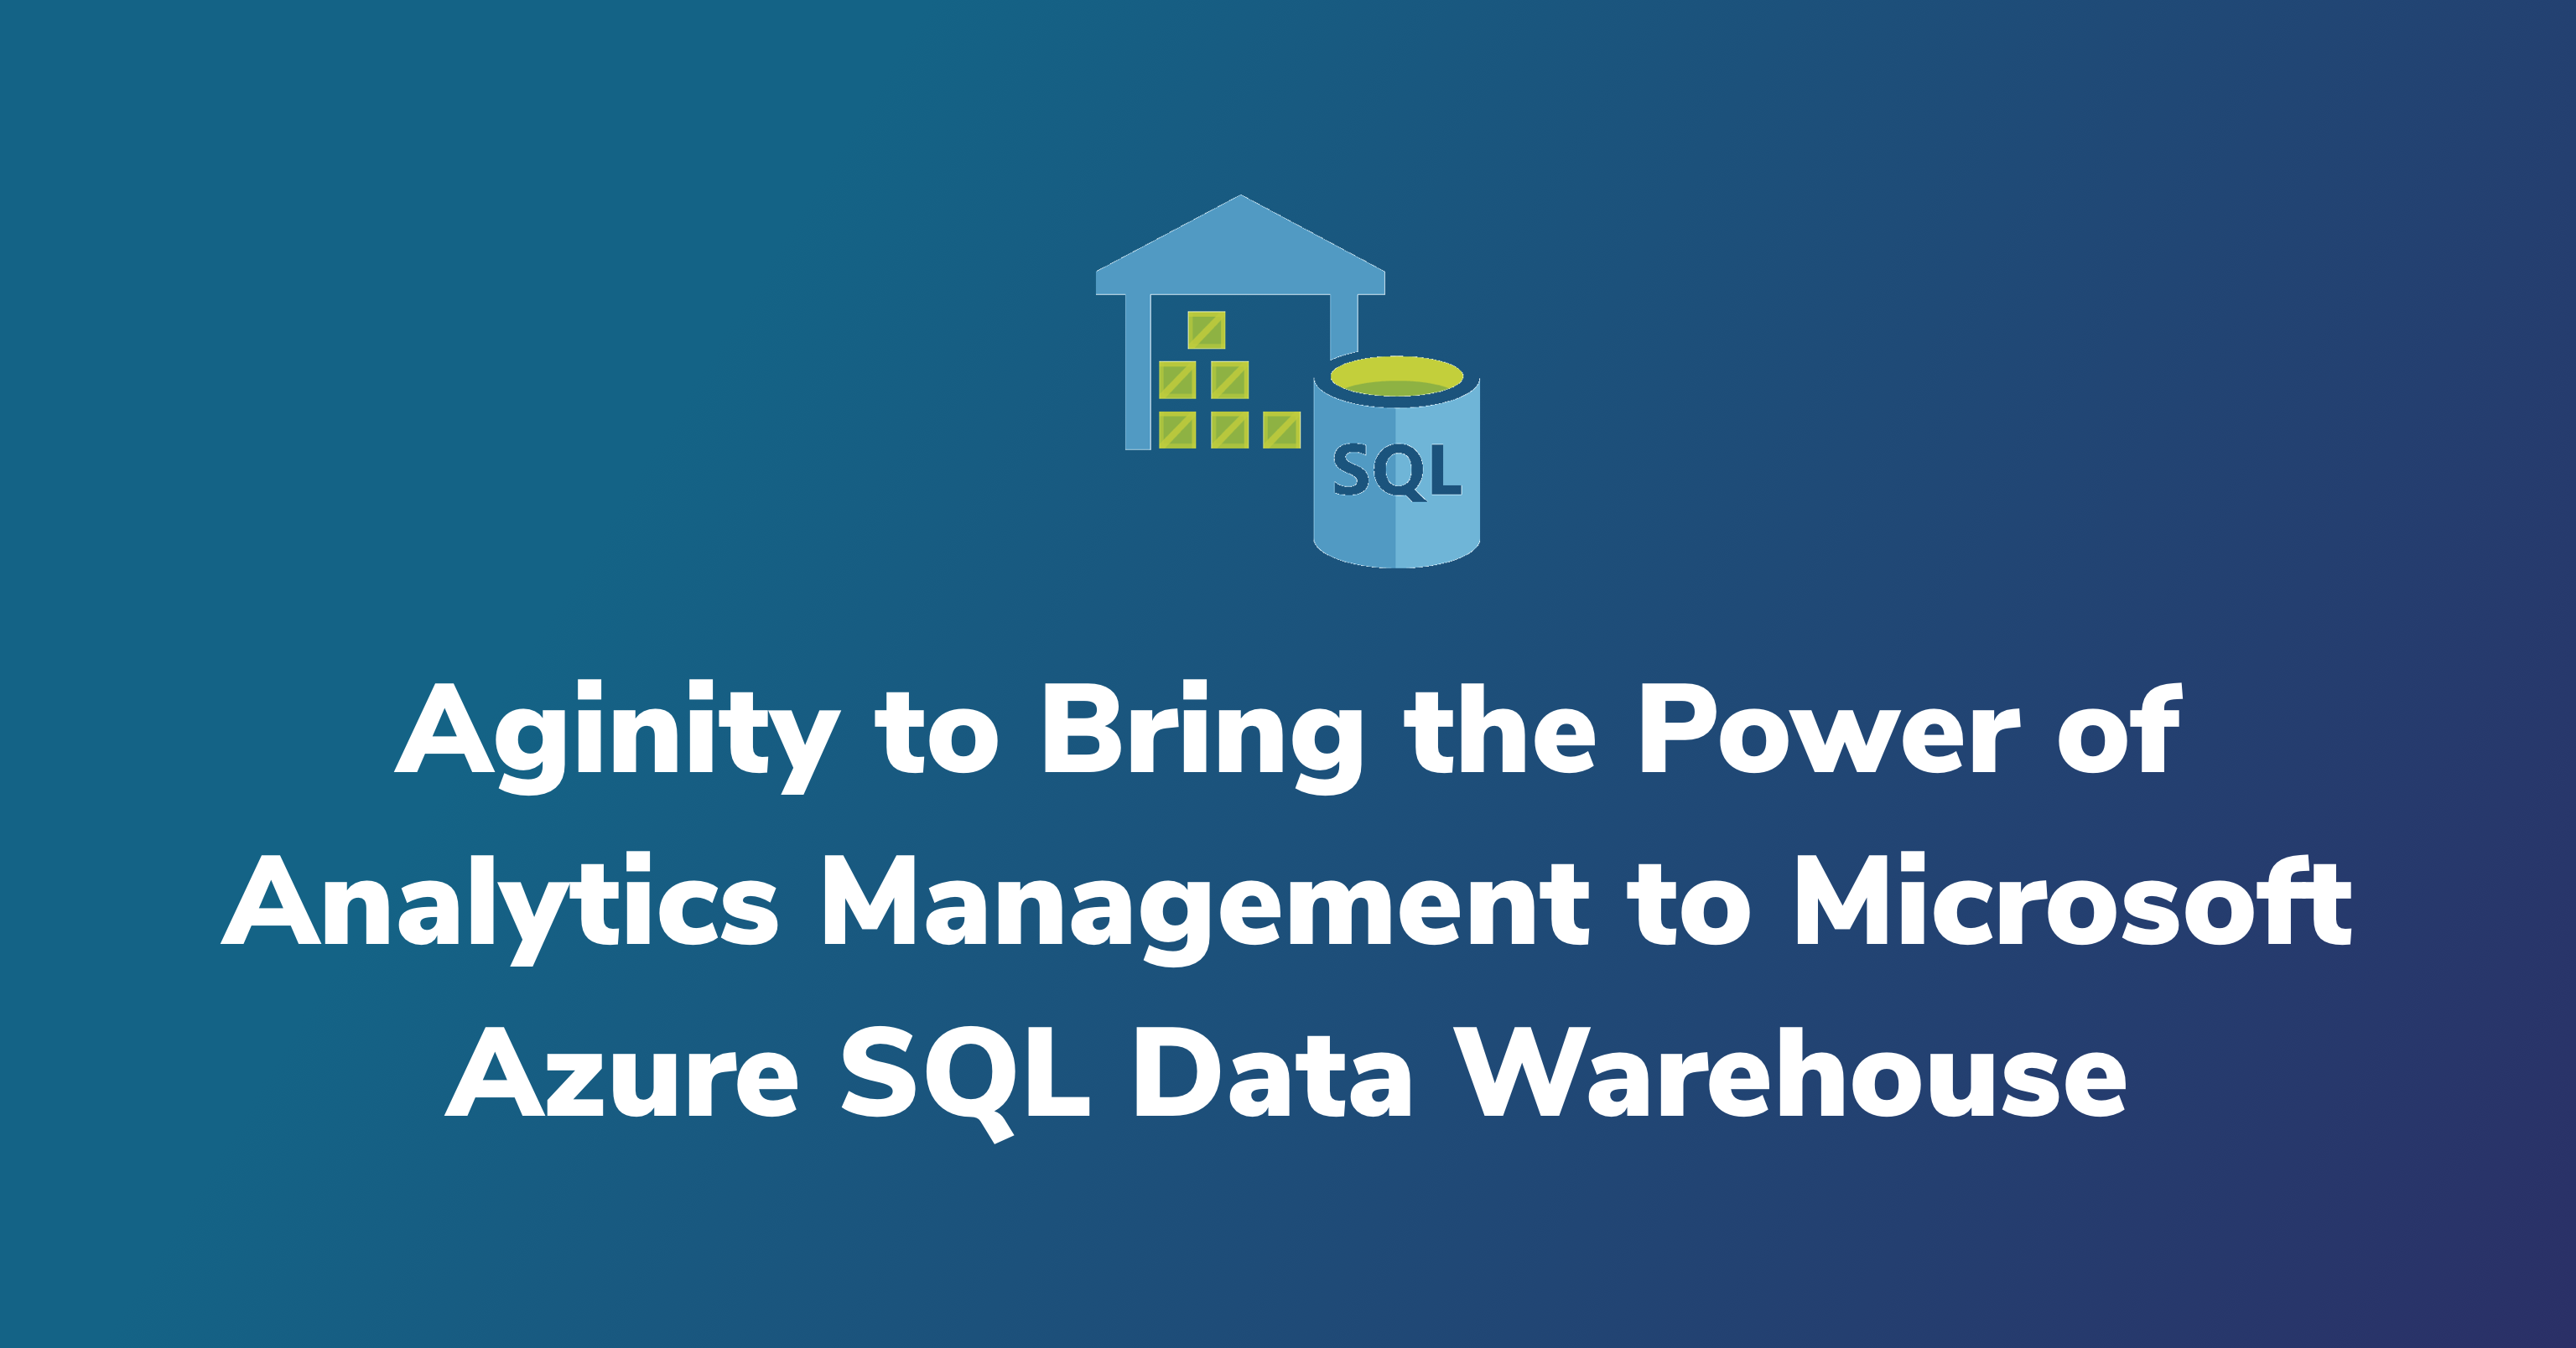 Aginity supports Azure SQL Data Warehouse